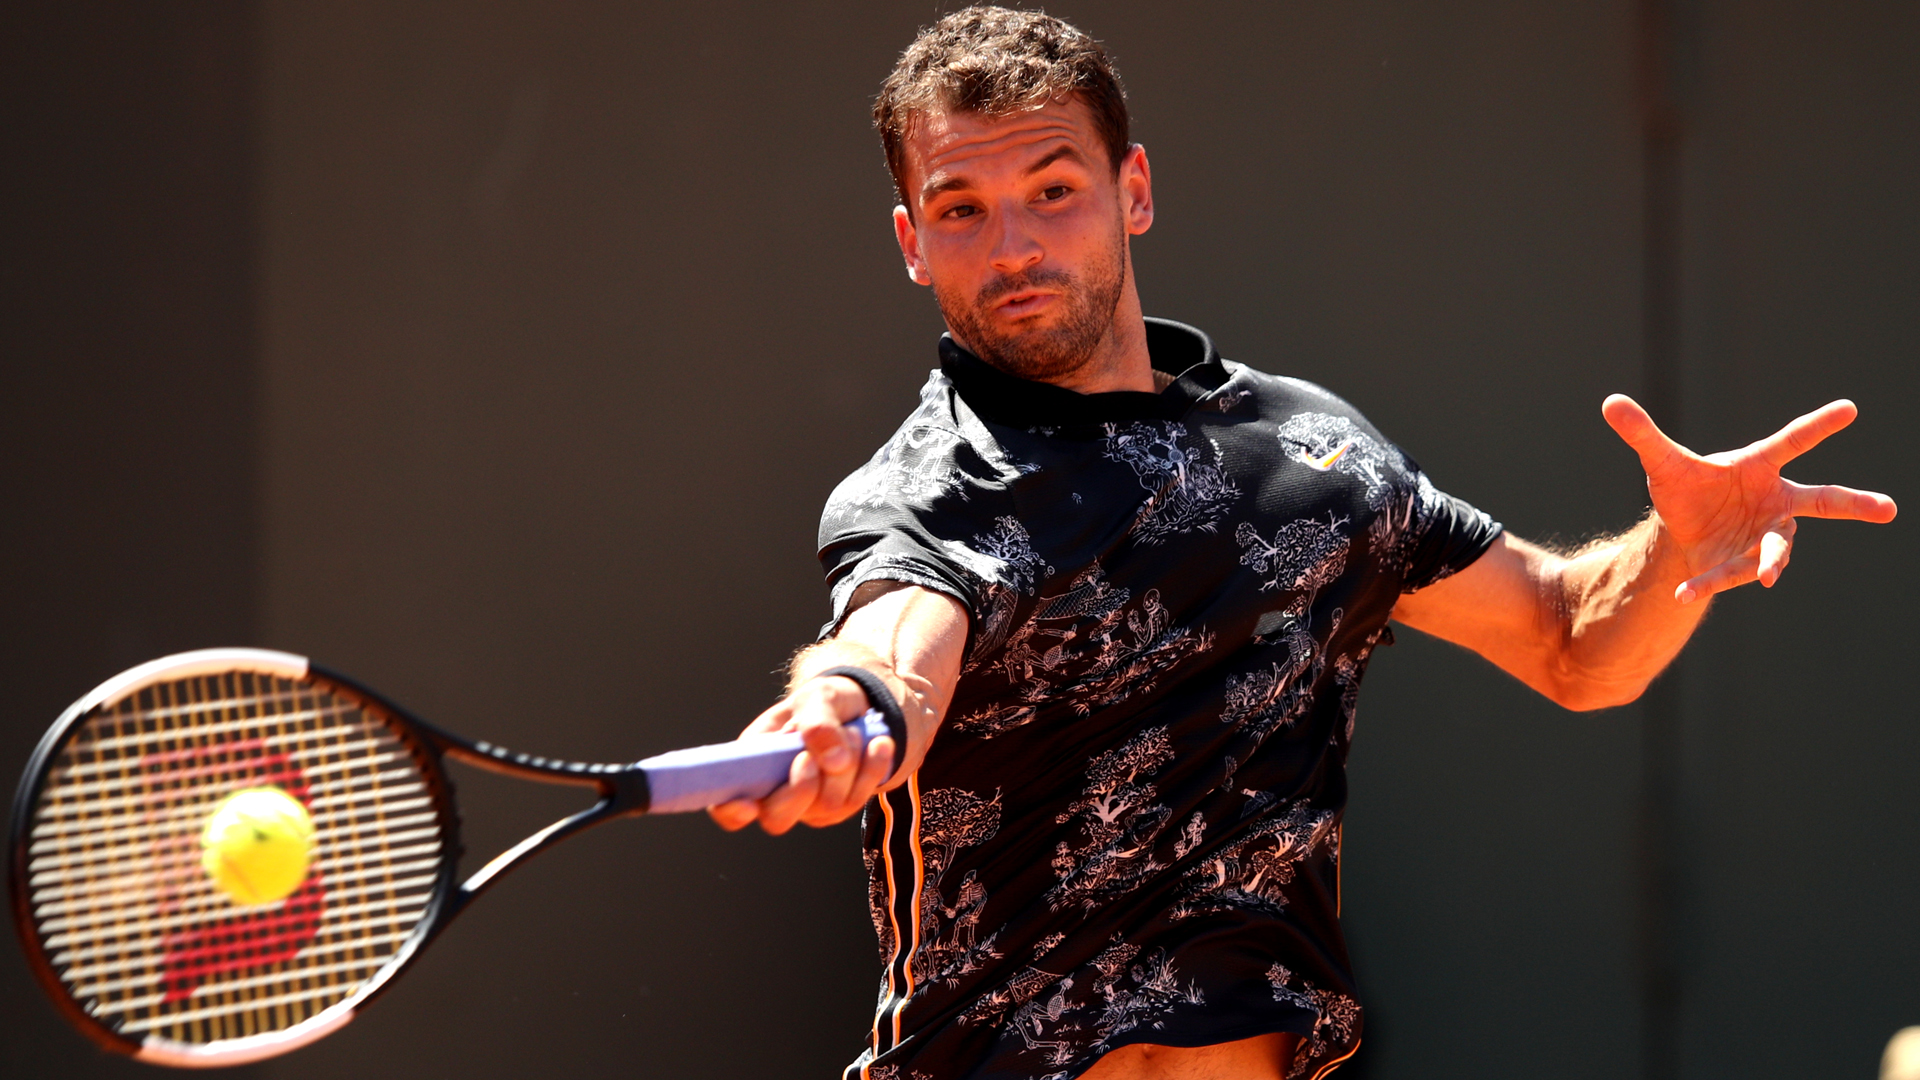 Already out of the top 50 in the rankings, Grigor Dimitrov's struggles continued with a surprise loss at the Atlanta Open.